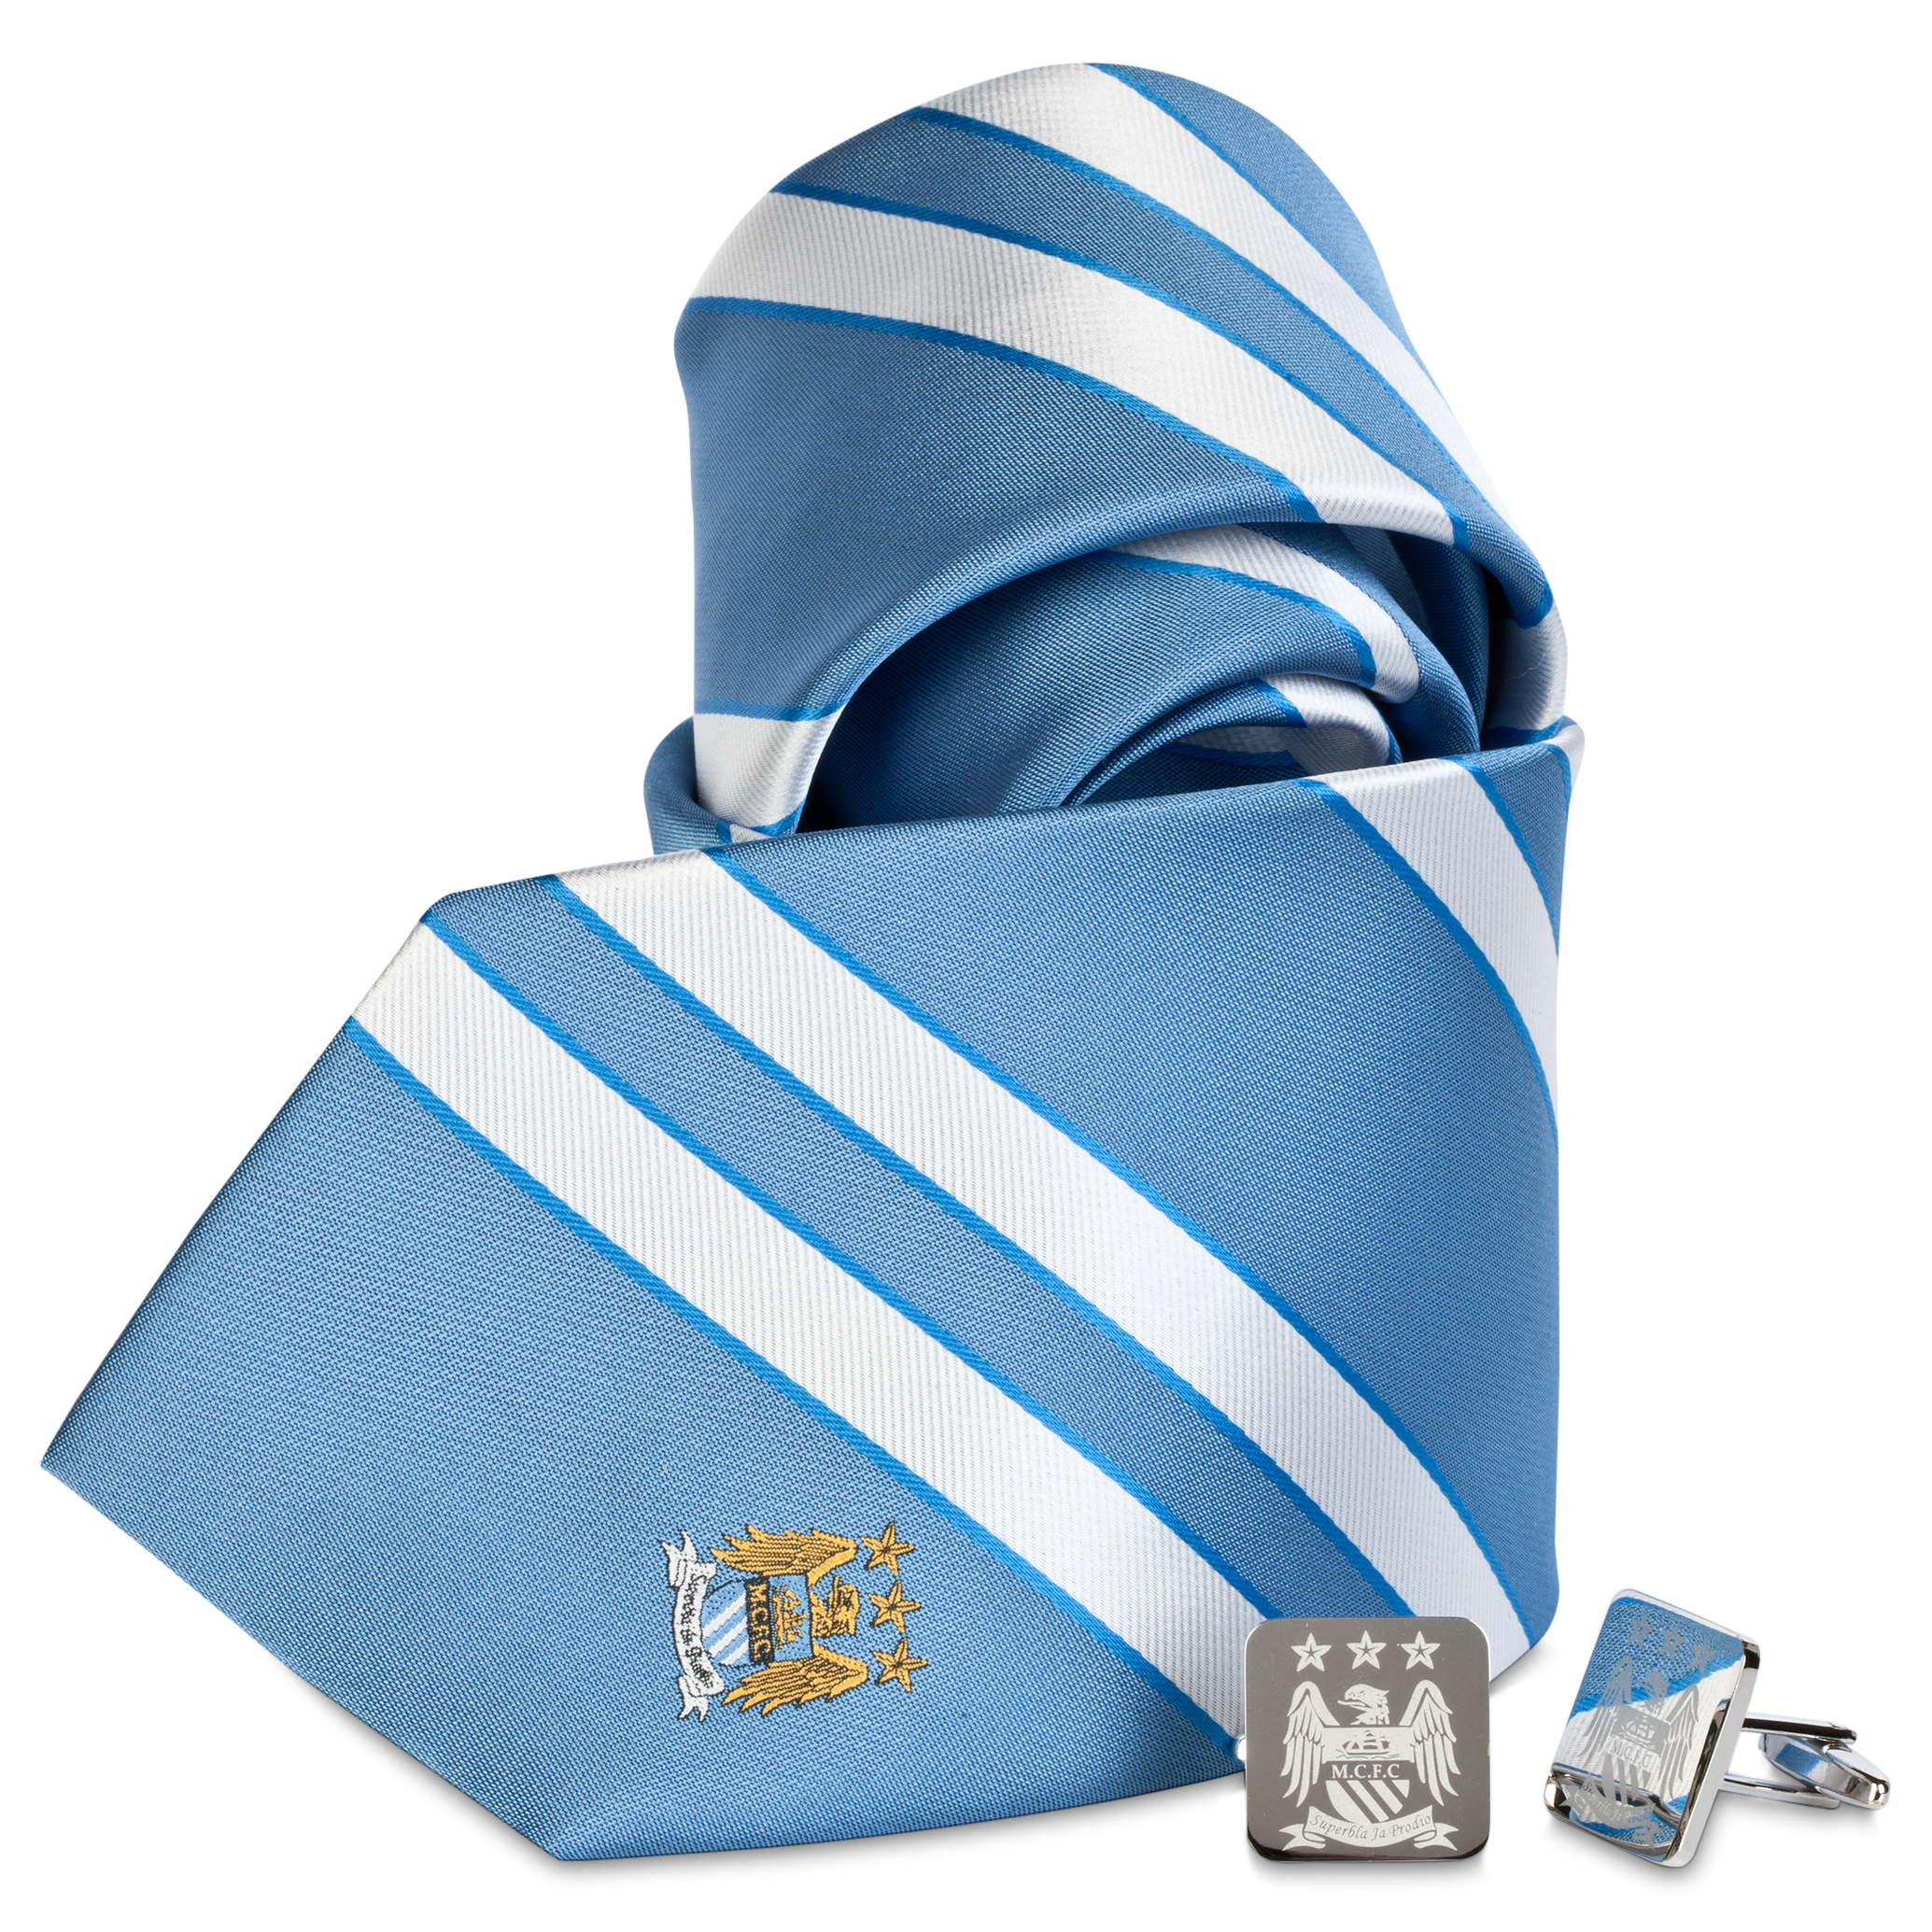 Manchester City Blue/White Cuflink and Tie Boxset